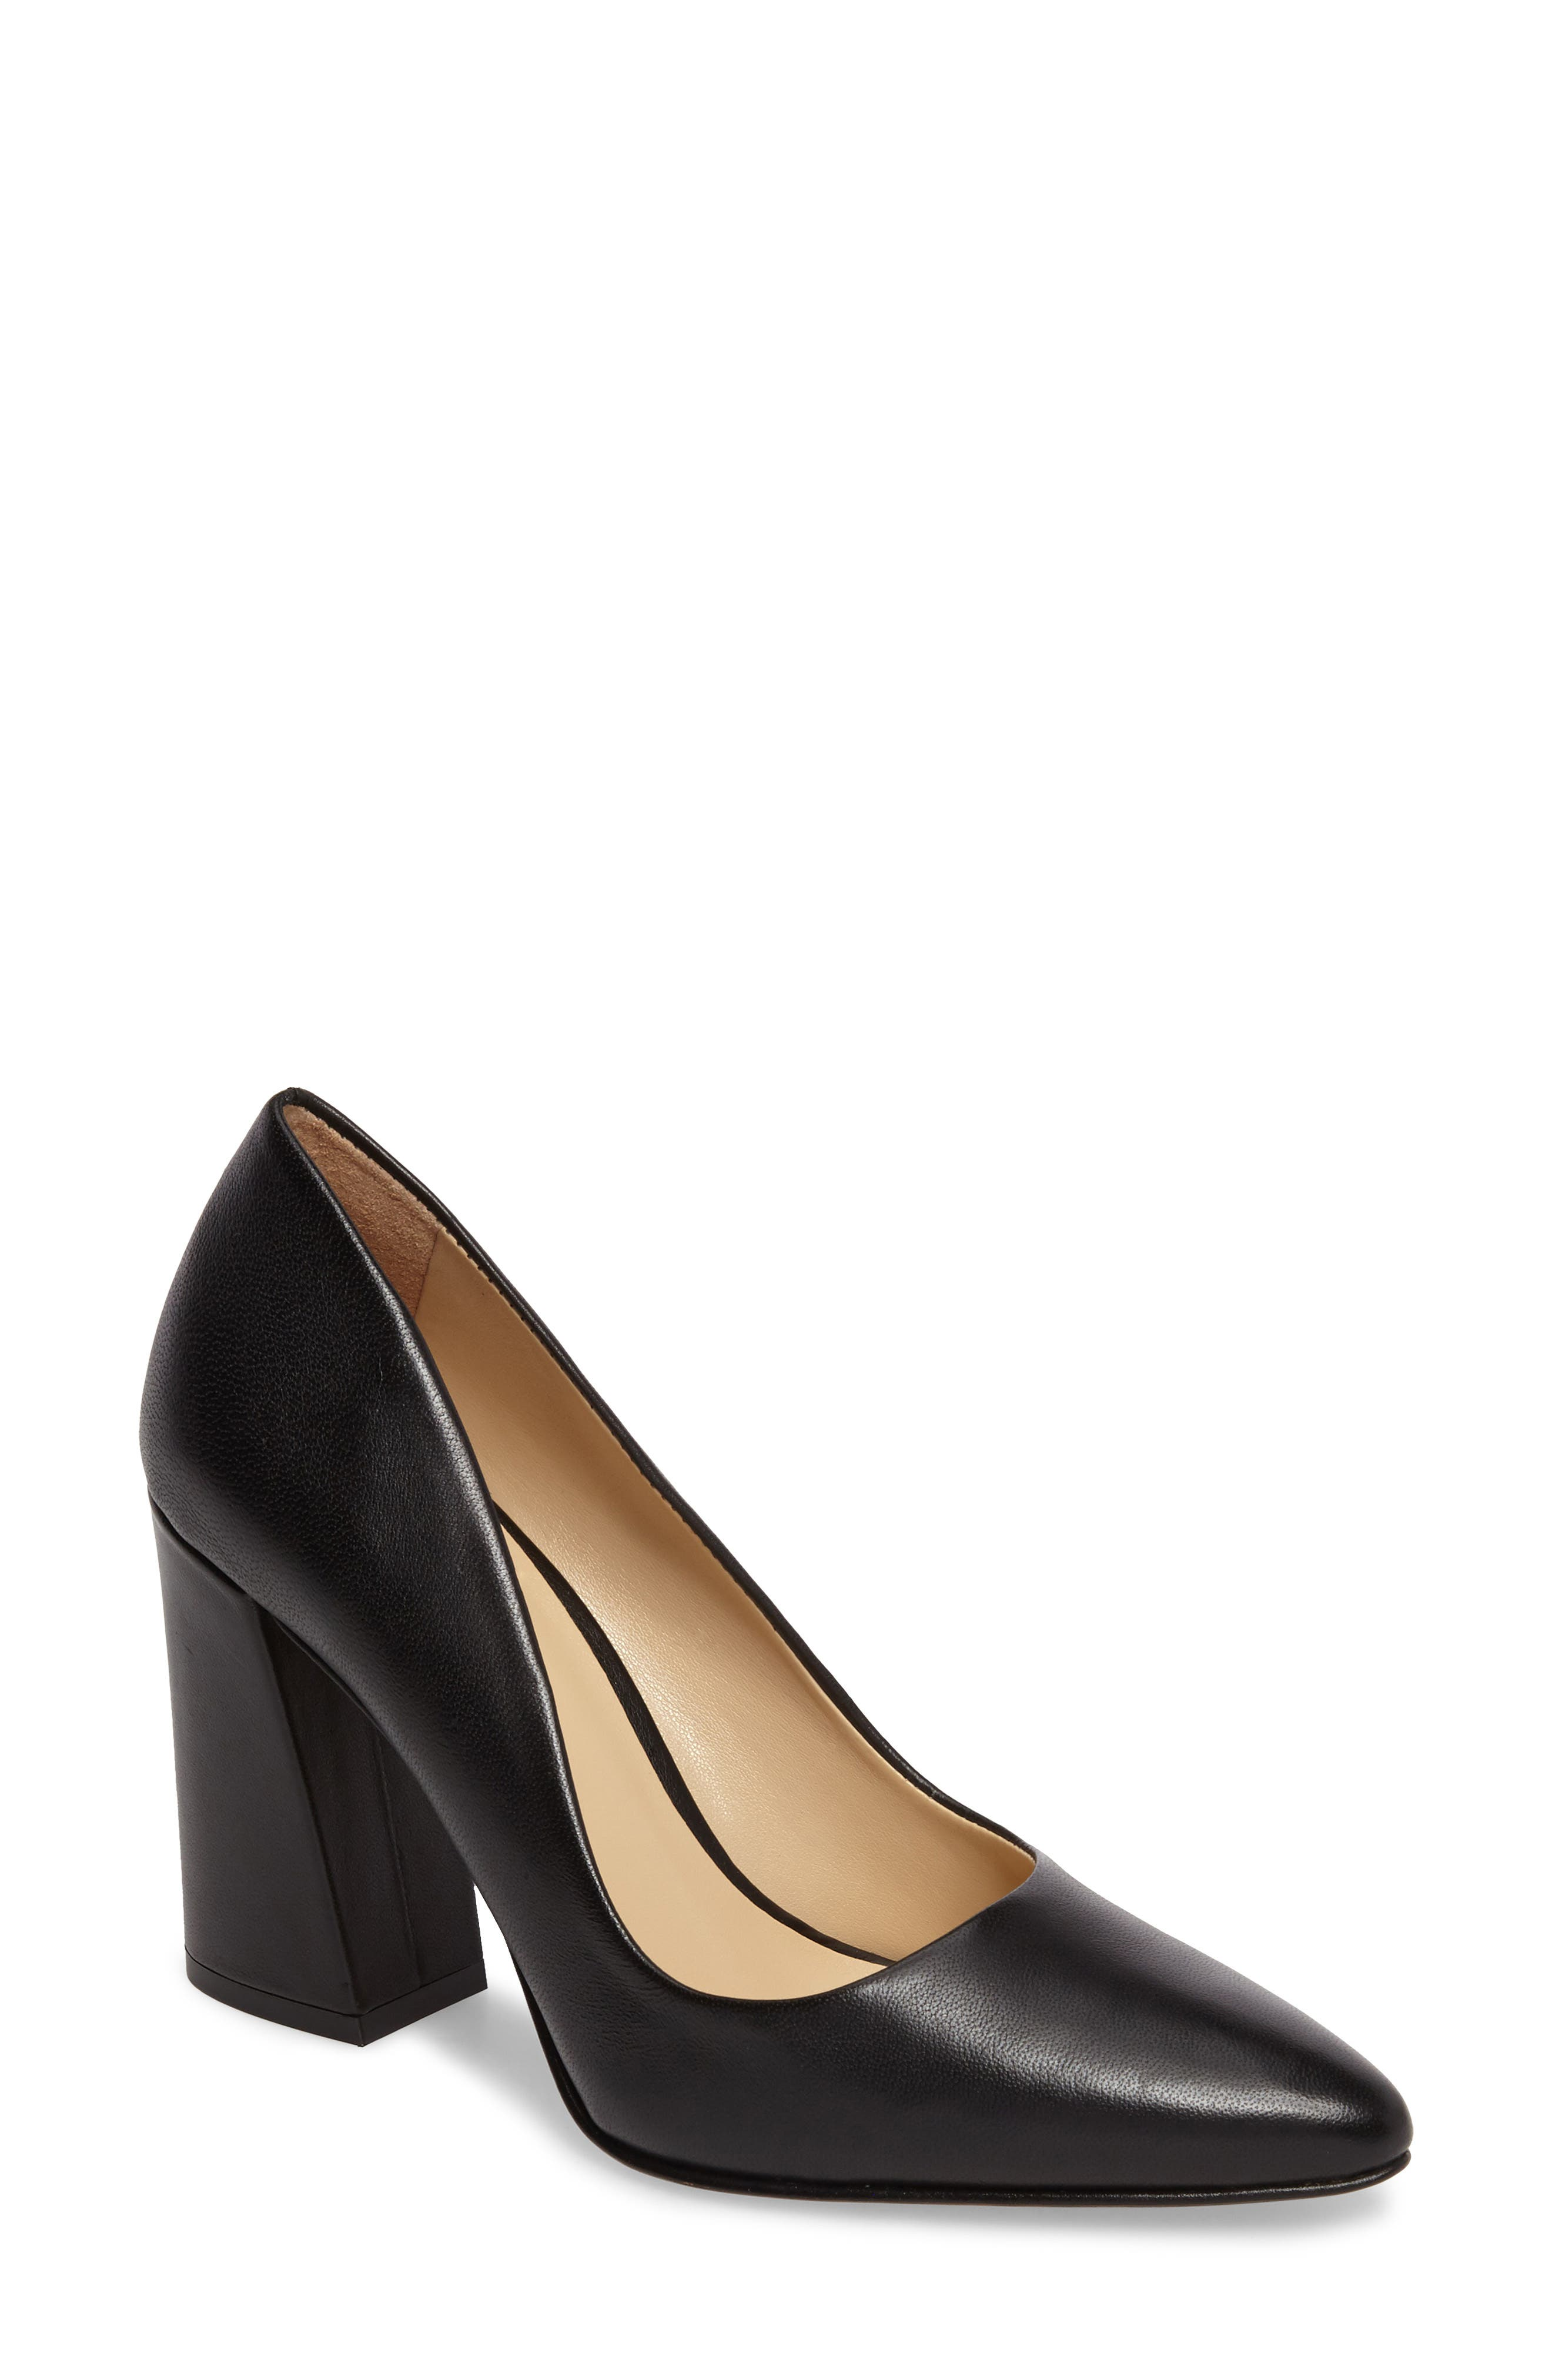 Talise Pointy Toe Pump,                         Main,                         color, BLACK BRULEE